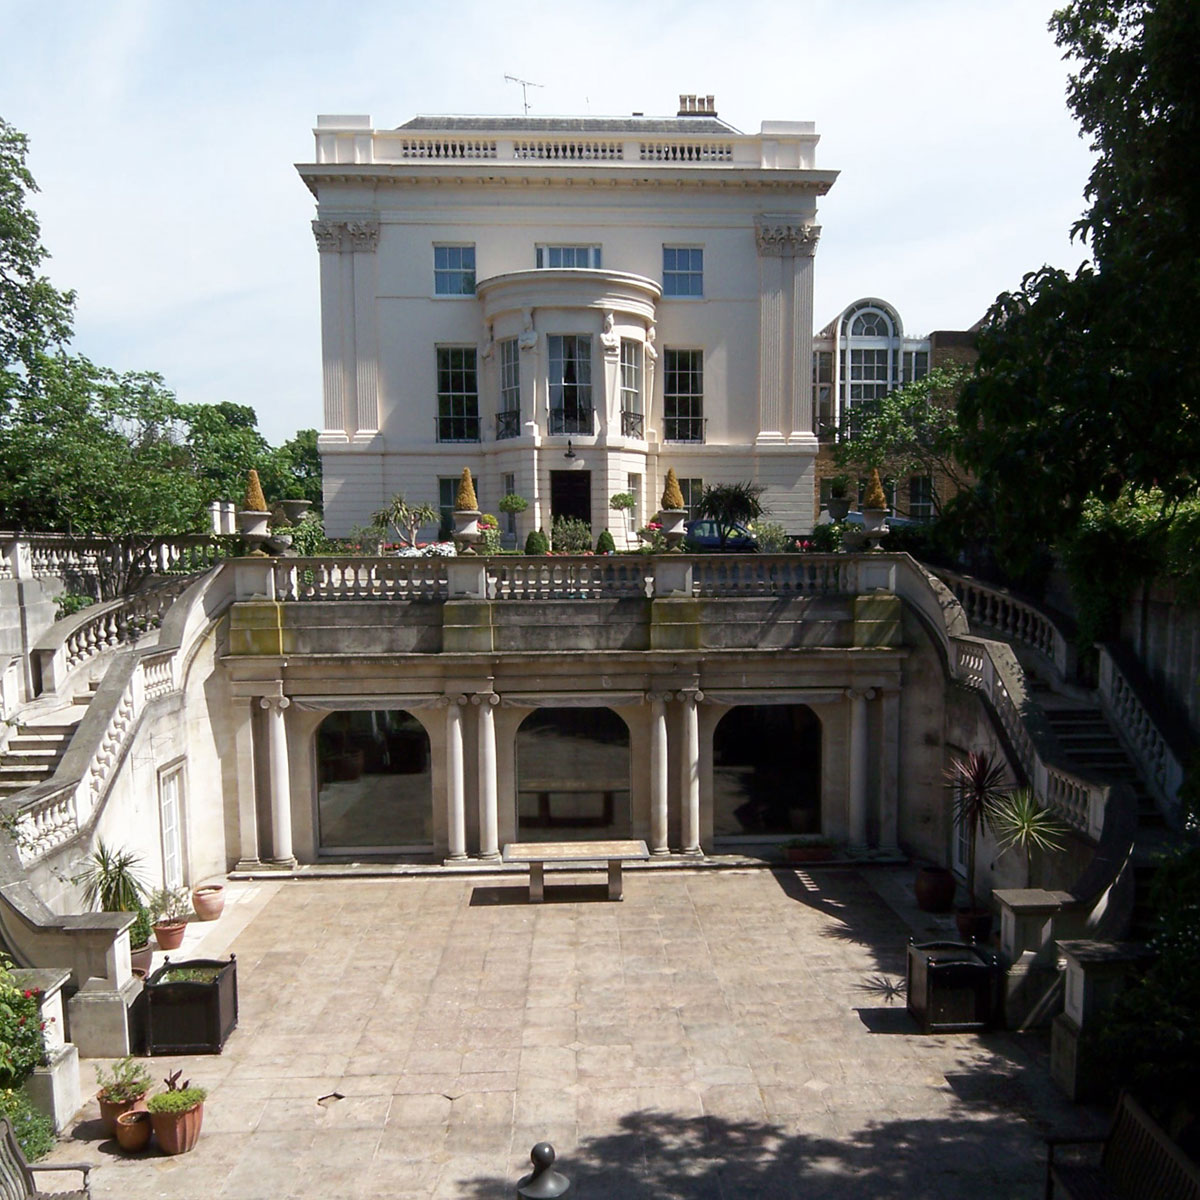 London's Cornwall Terrace Property Sold For £80 Million